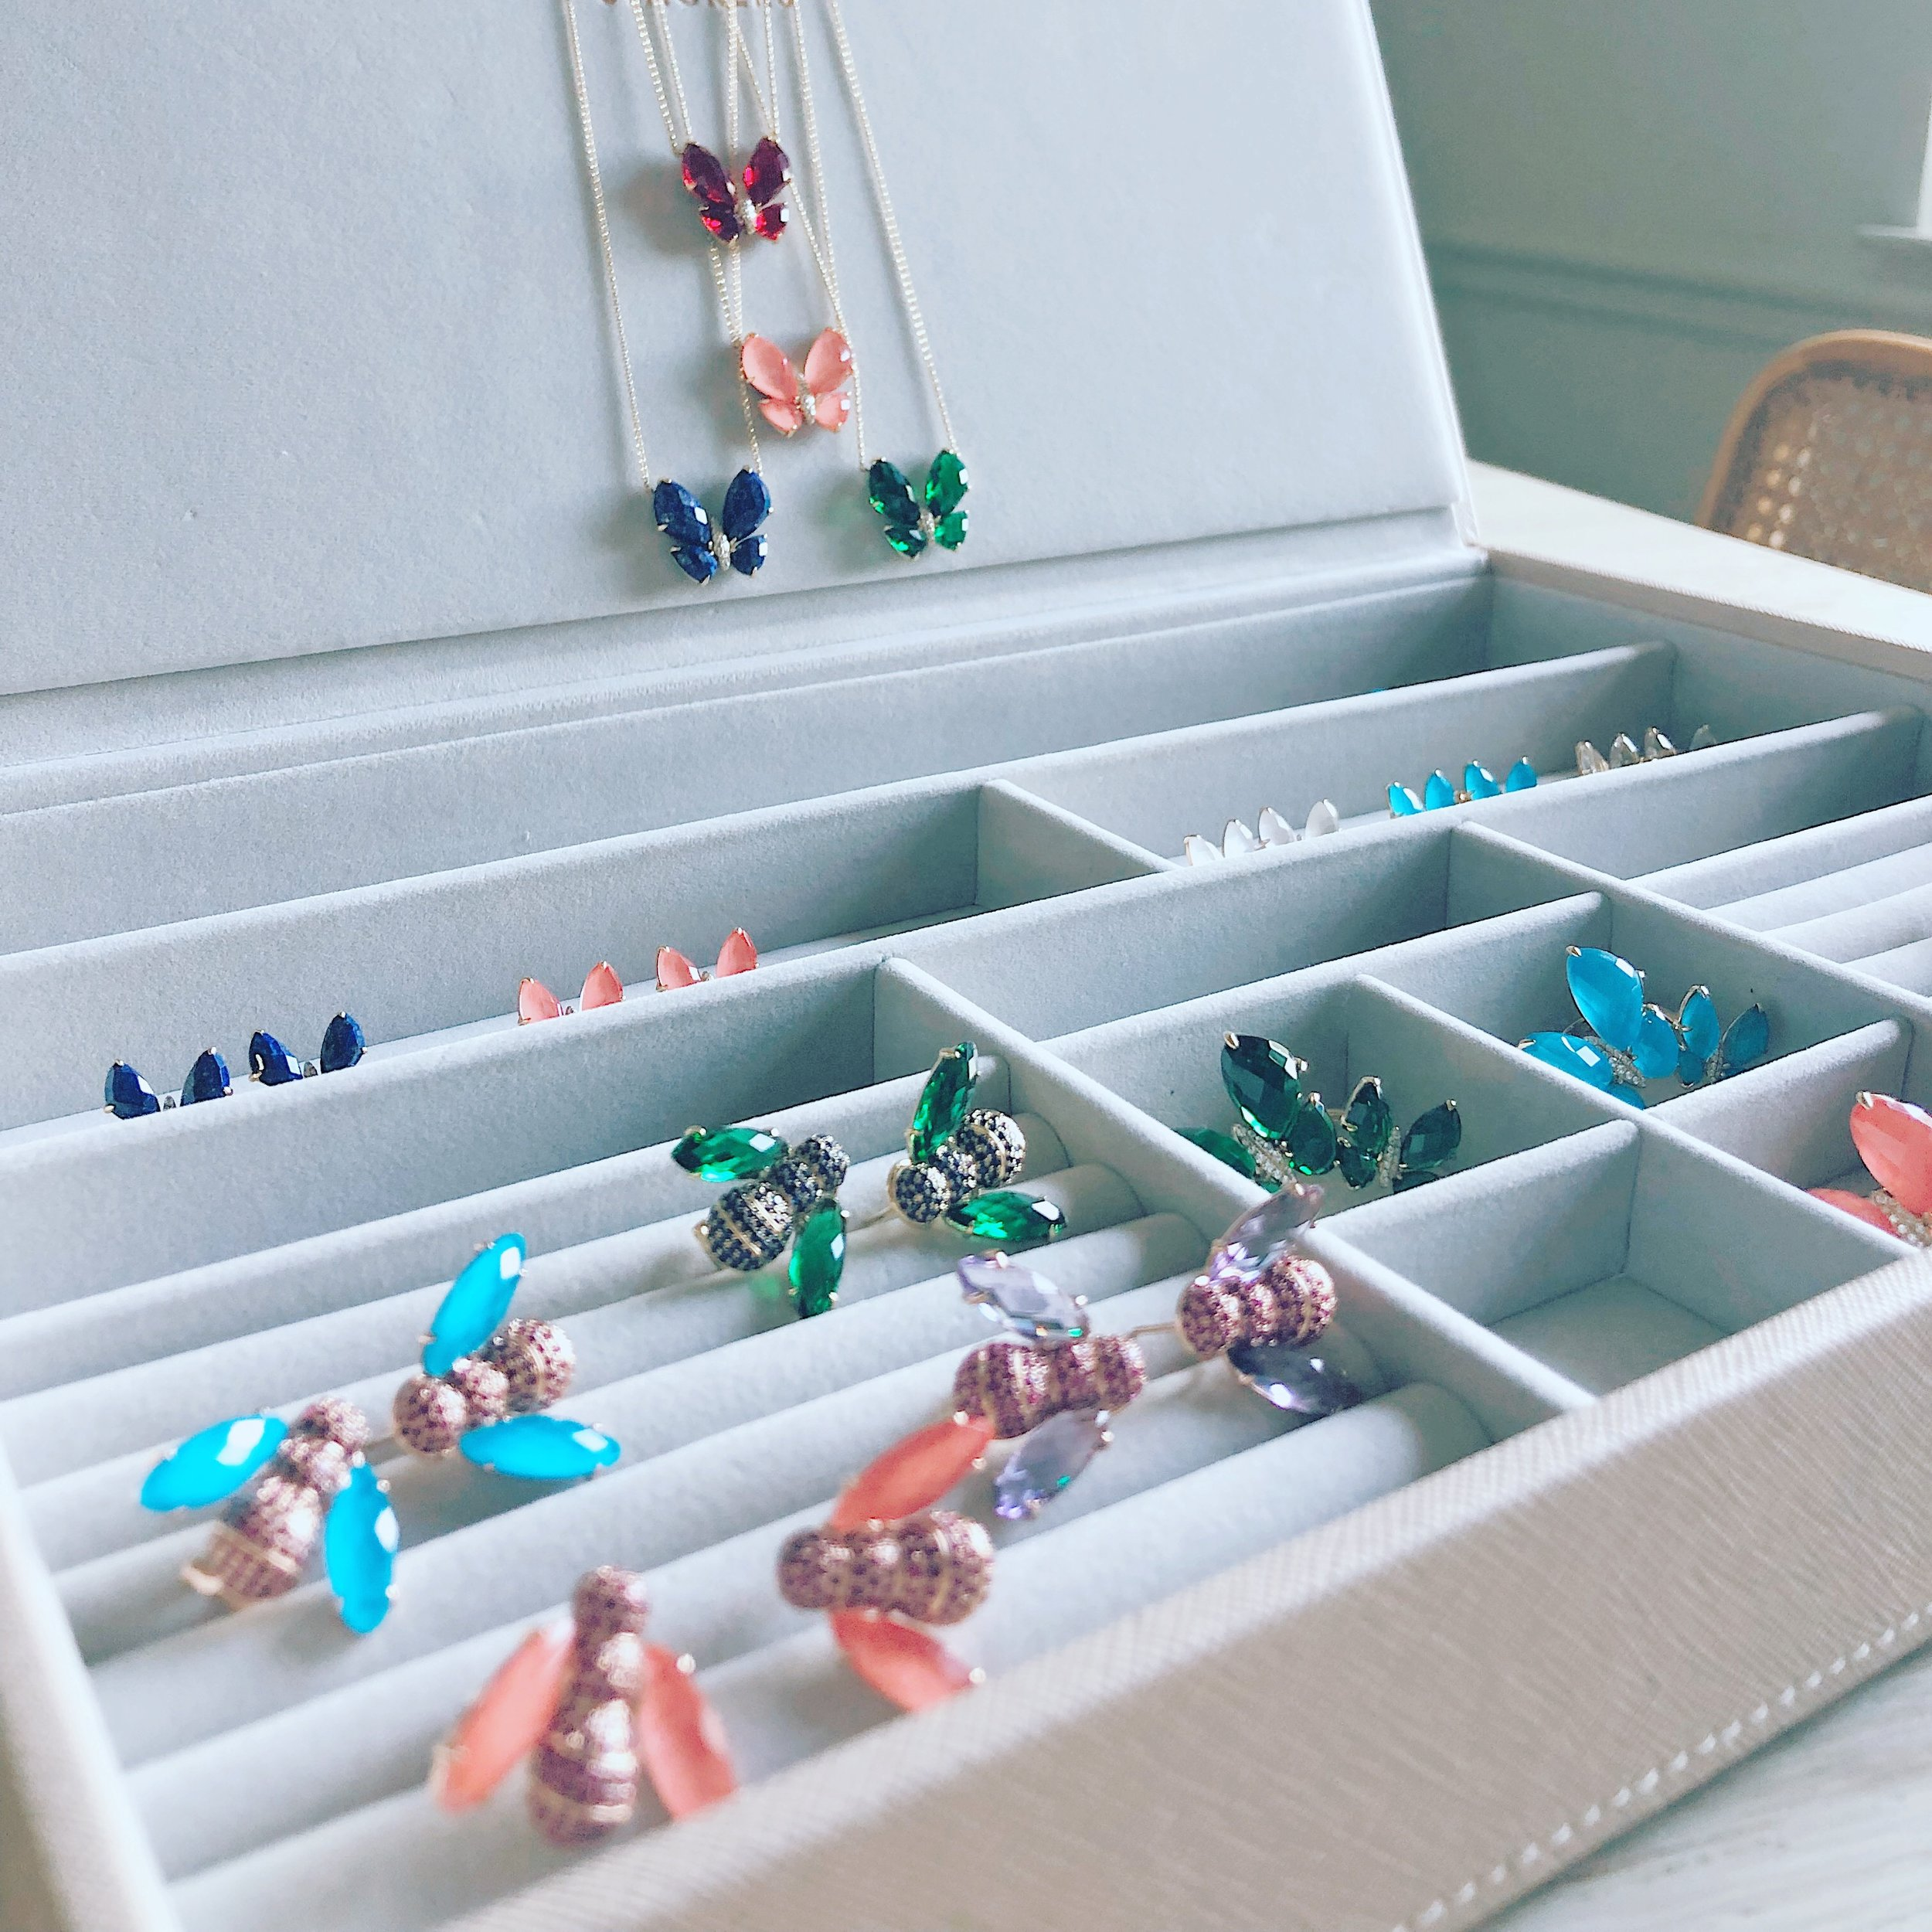 Wishing this was my real jewelry box, not just a jewelry preview